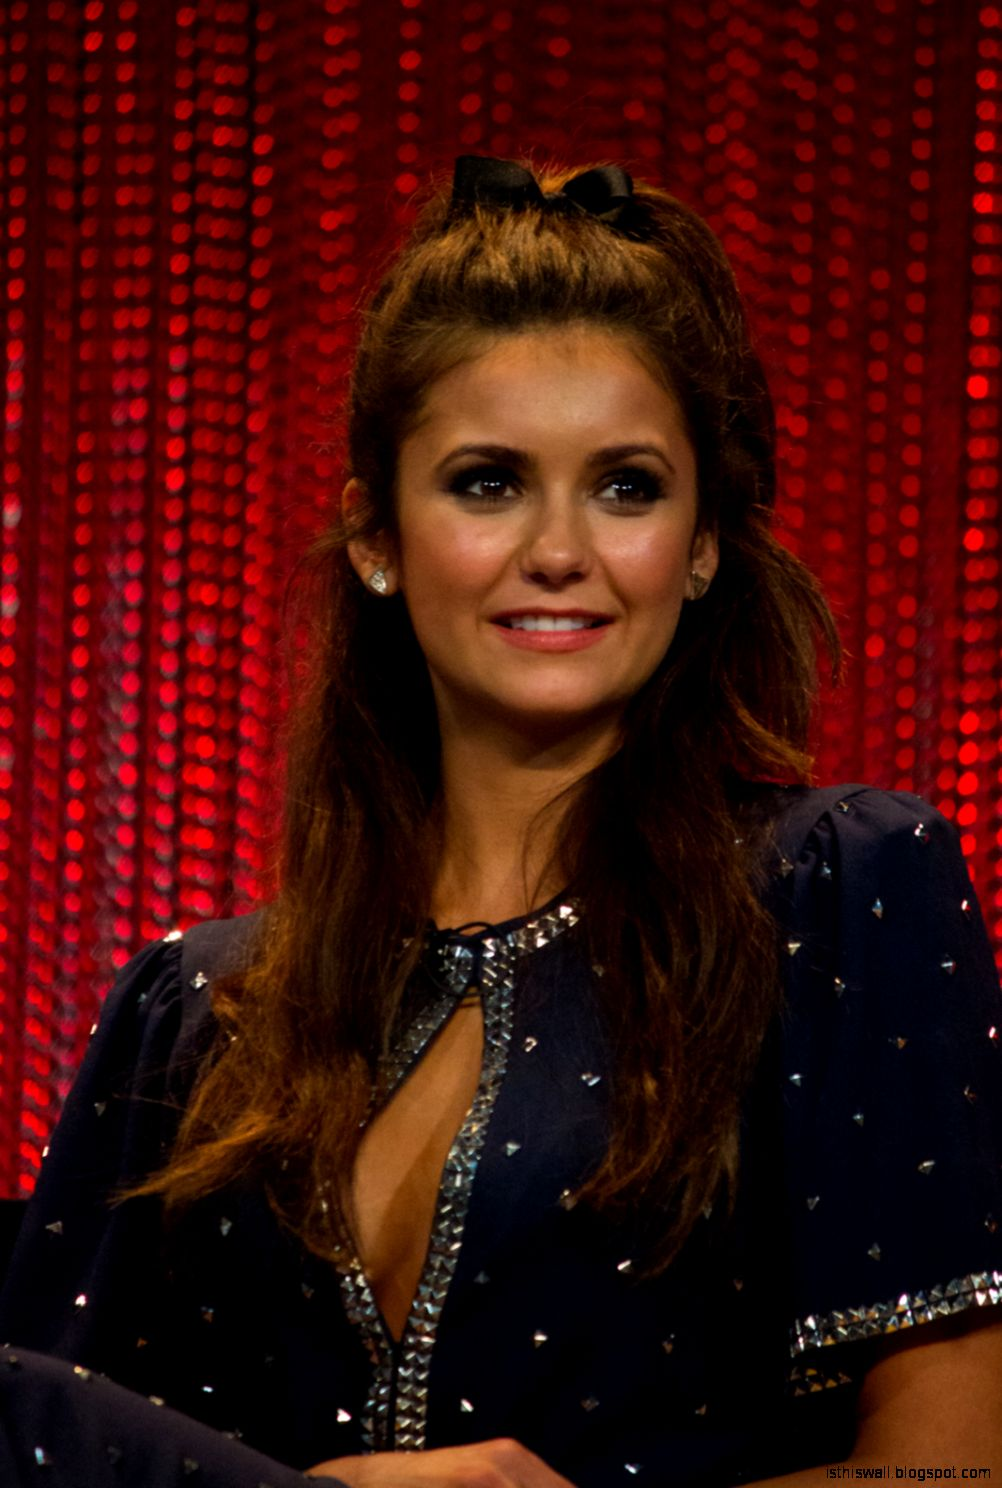 Nina Dobrev   Wikipedia the free encyclopedia